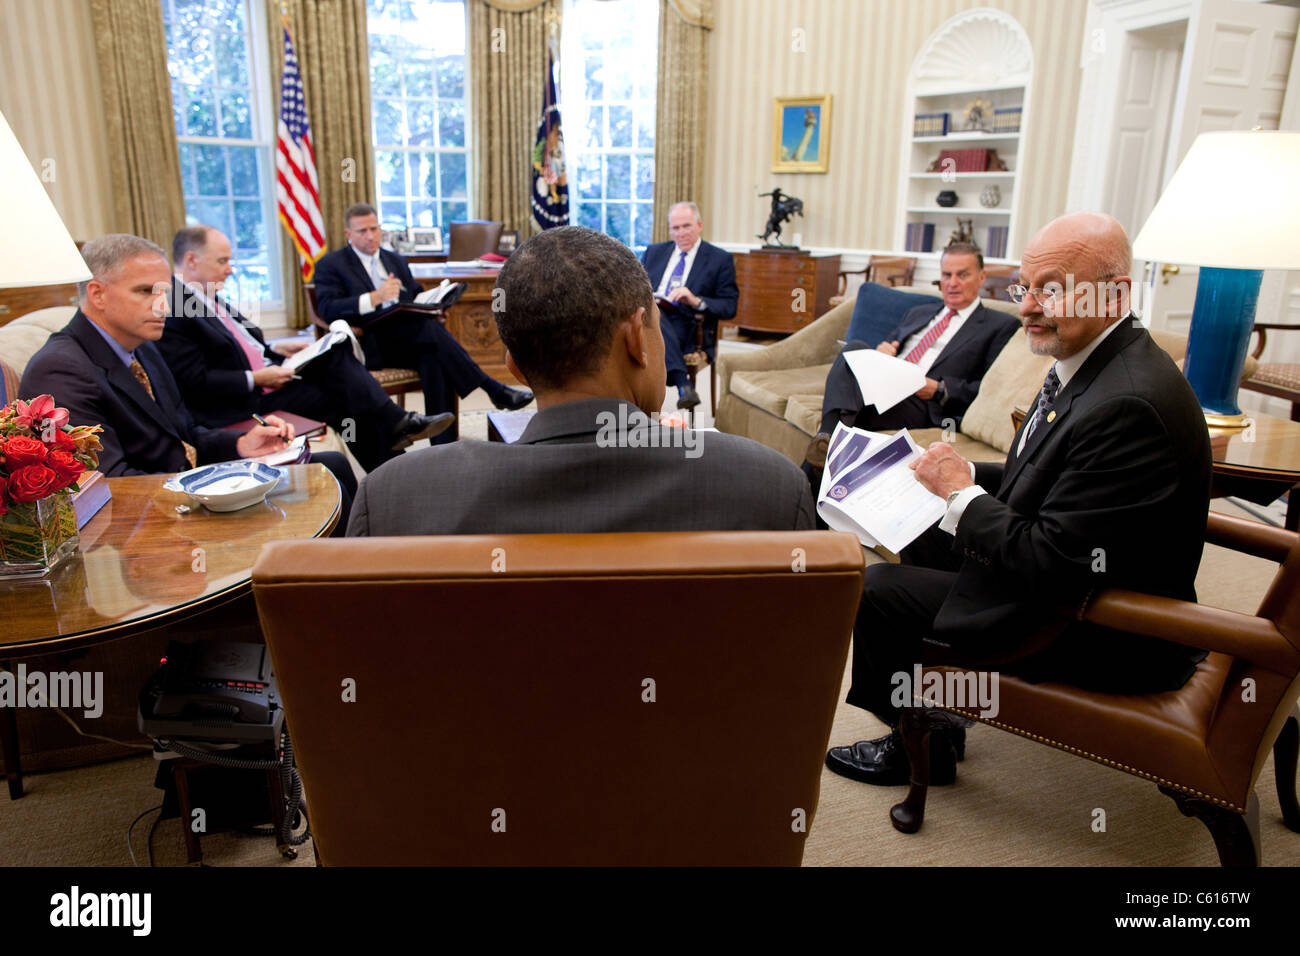 President Obama meets with Director of National Intelligence James Clapper right on Sept. 9 2010. L to R Robert - Stock Image